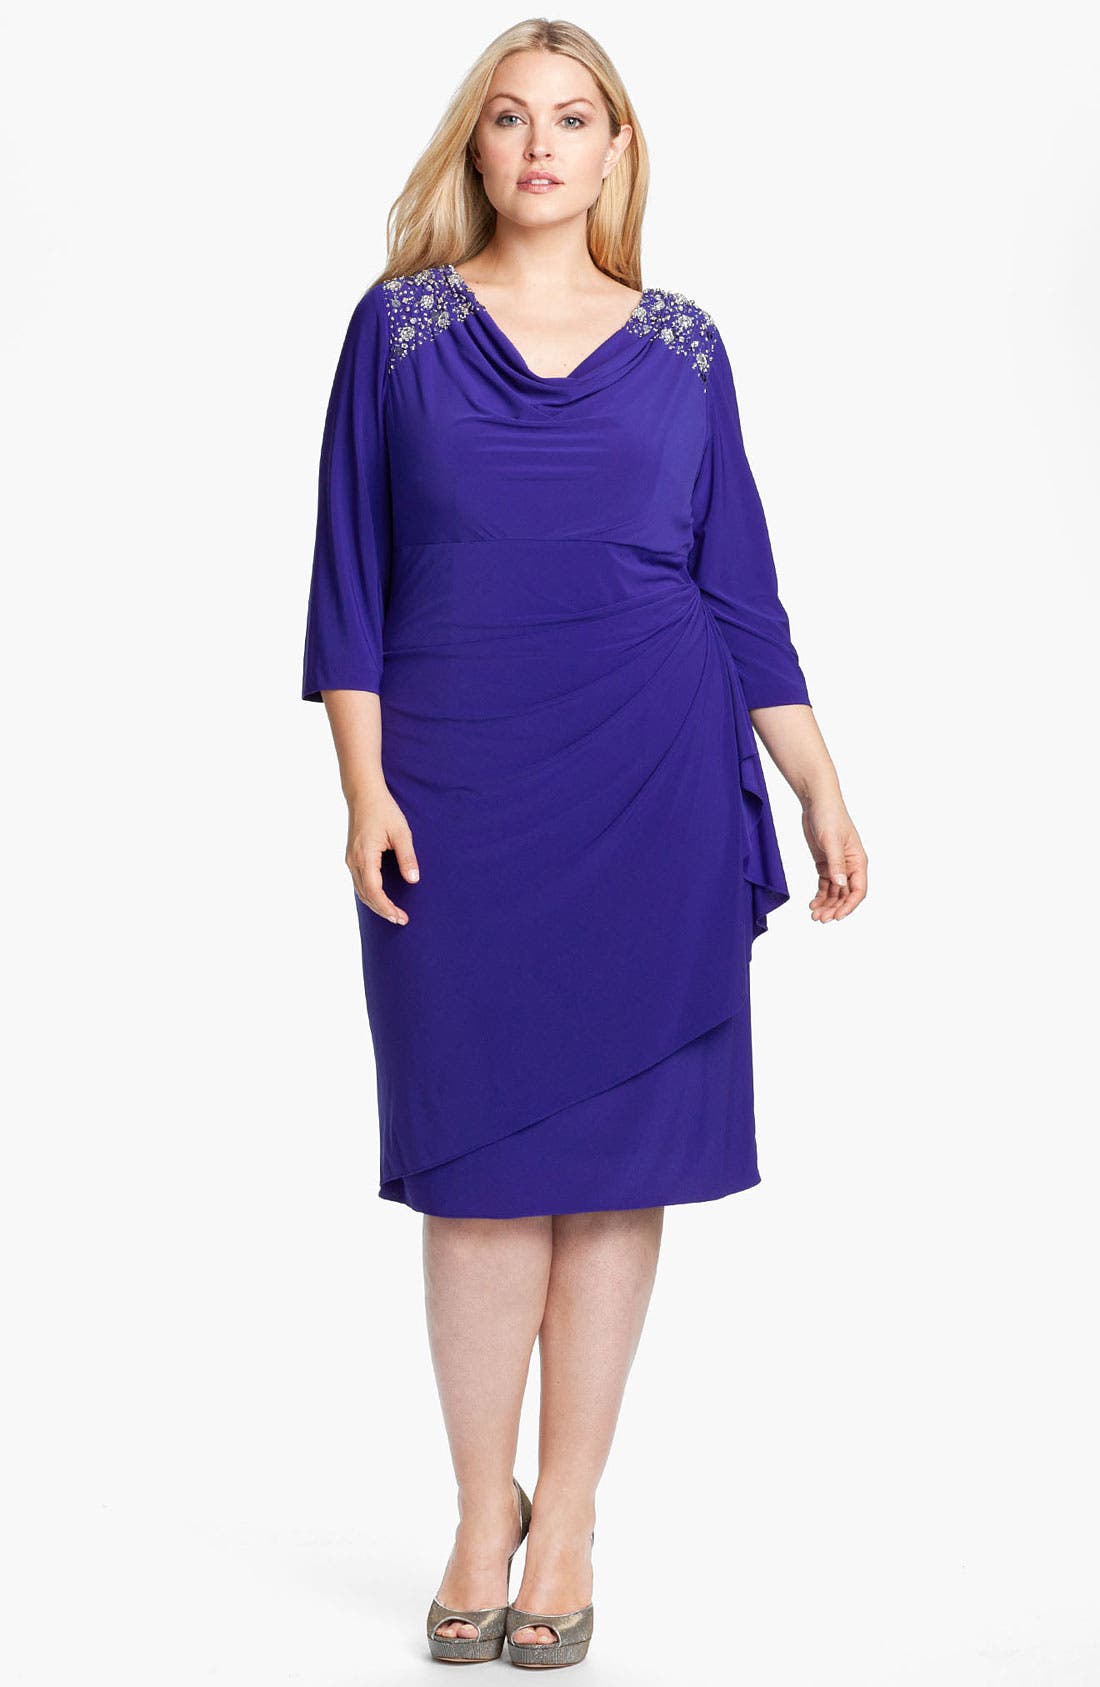 Alternate Image 1 Selected - Alex Evenings Jeweled Faux Wrap Matte Jersey Dress (Plus)